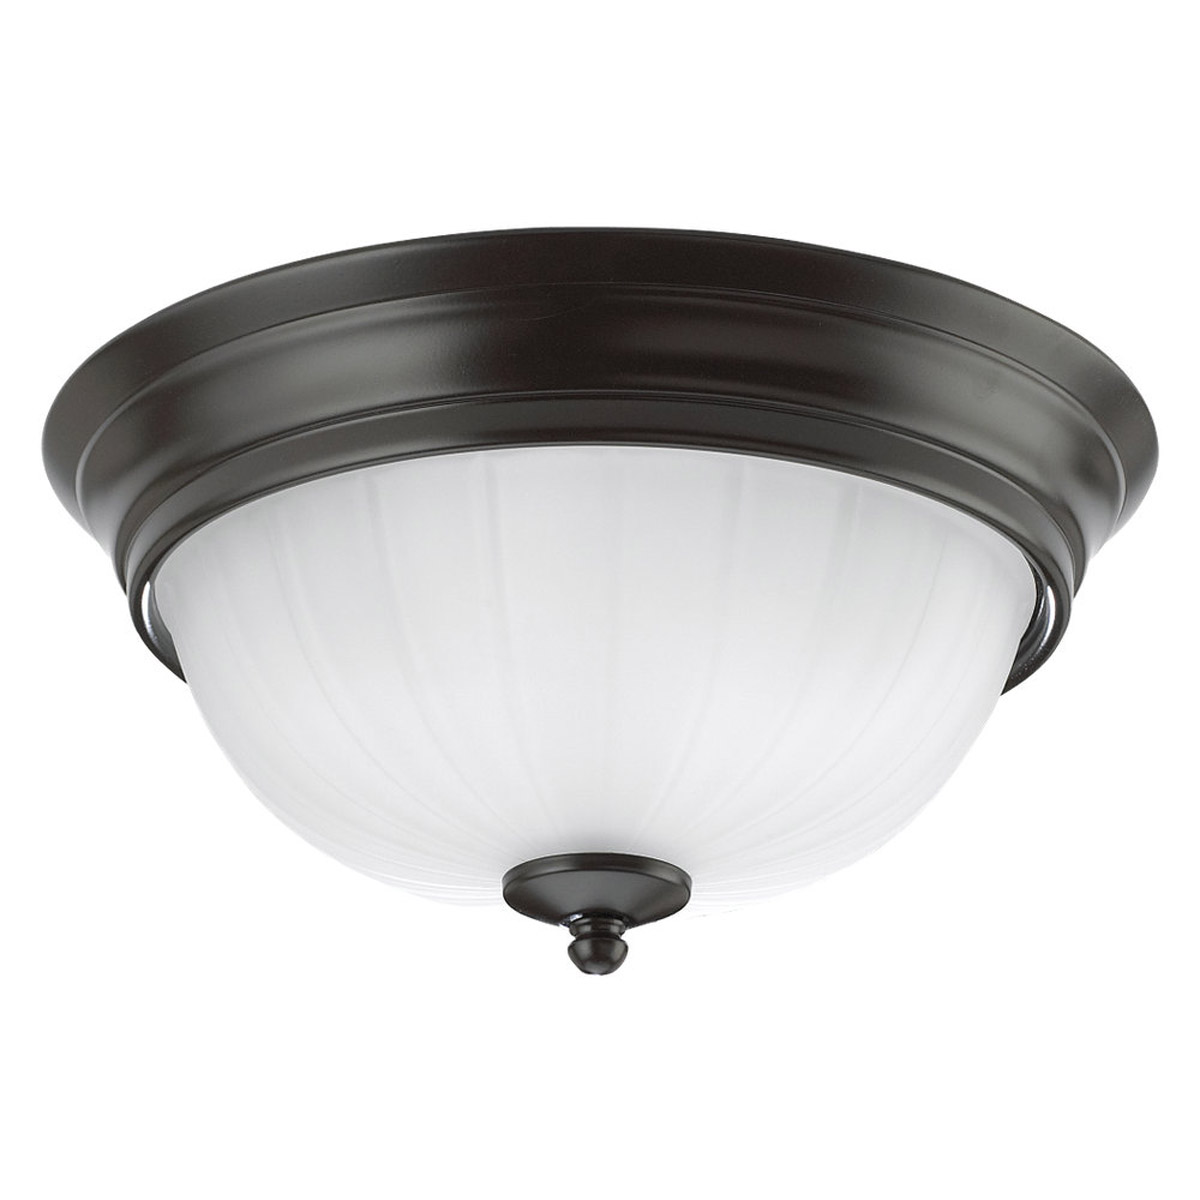 Sea Gull Lighting Linwood 1 Light Flush Mount in Heirloom Bronze 7504-782 photo